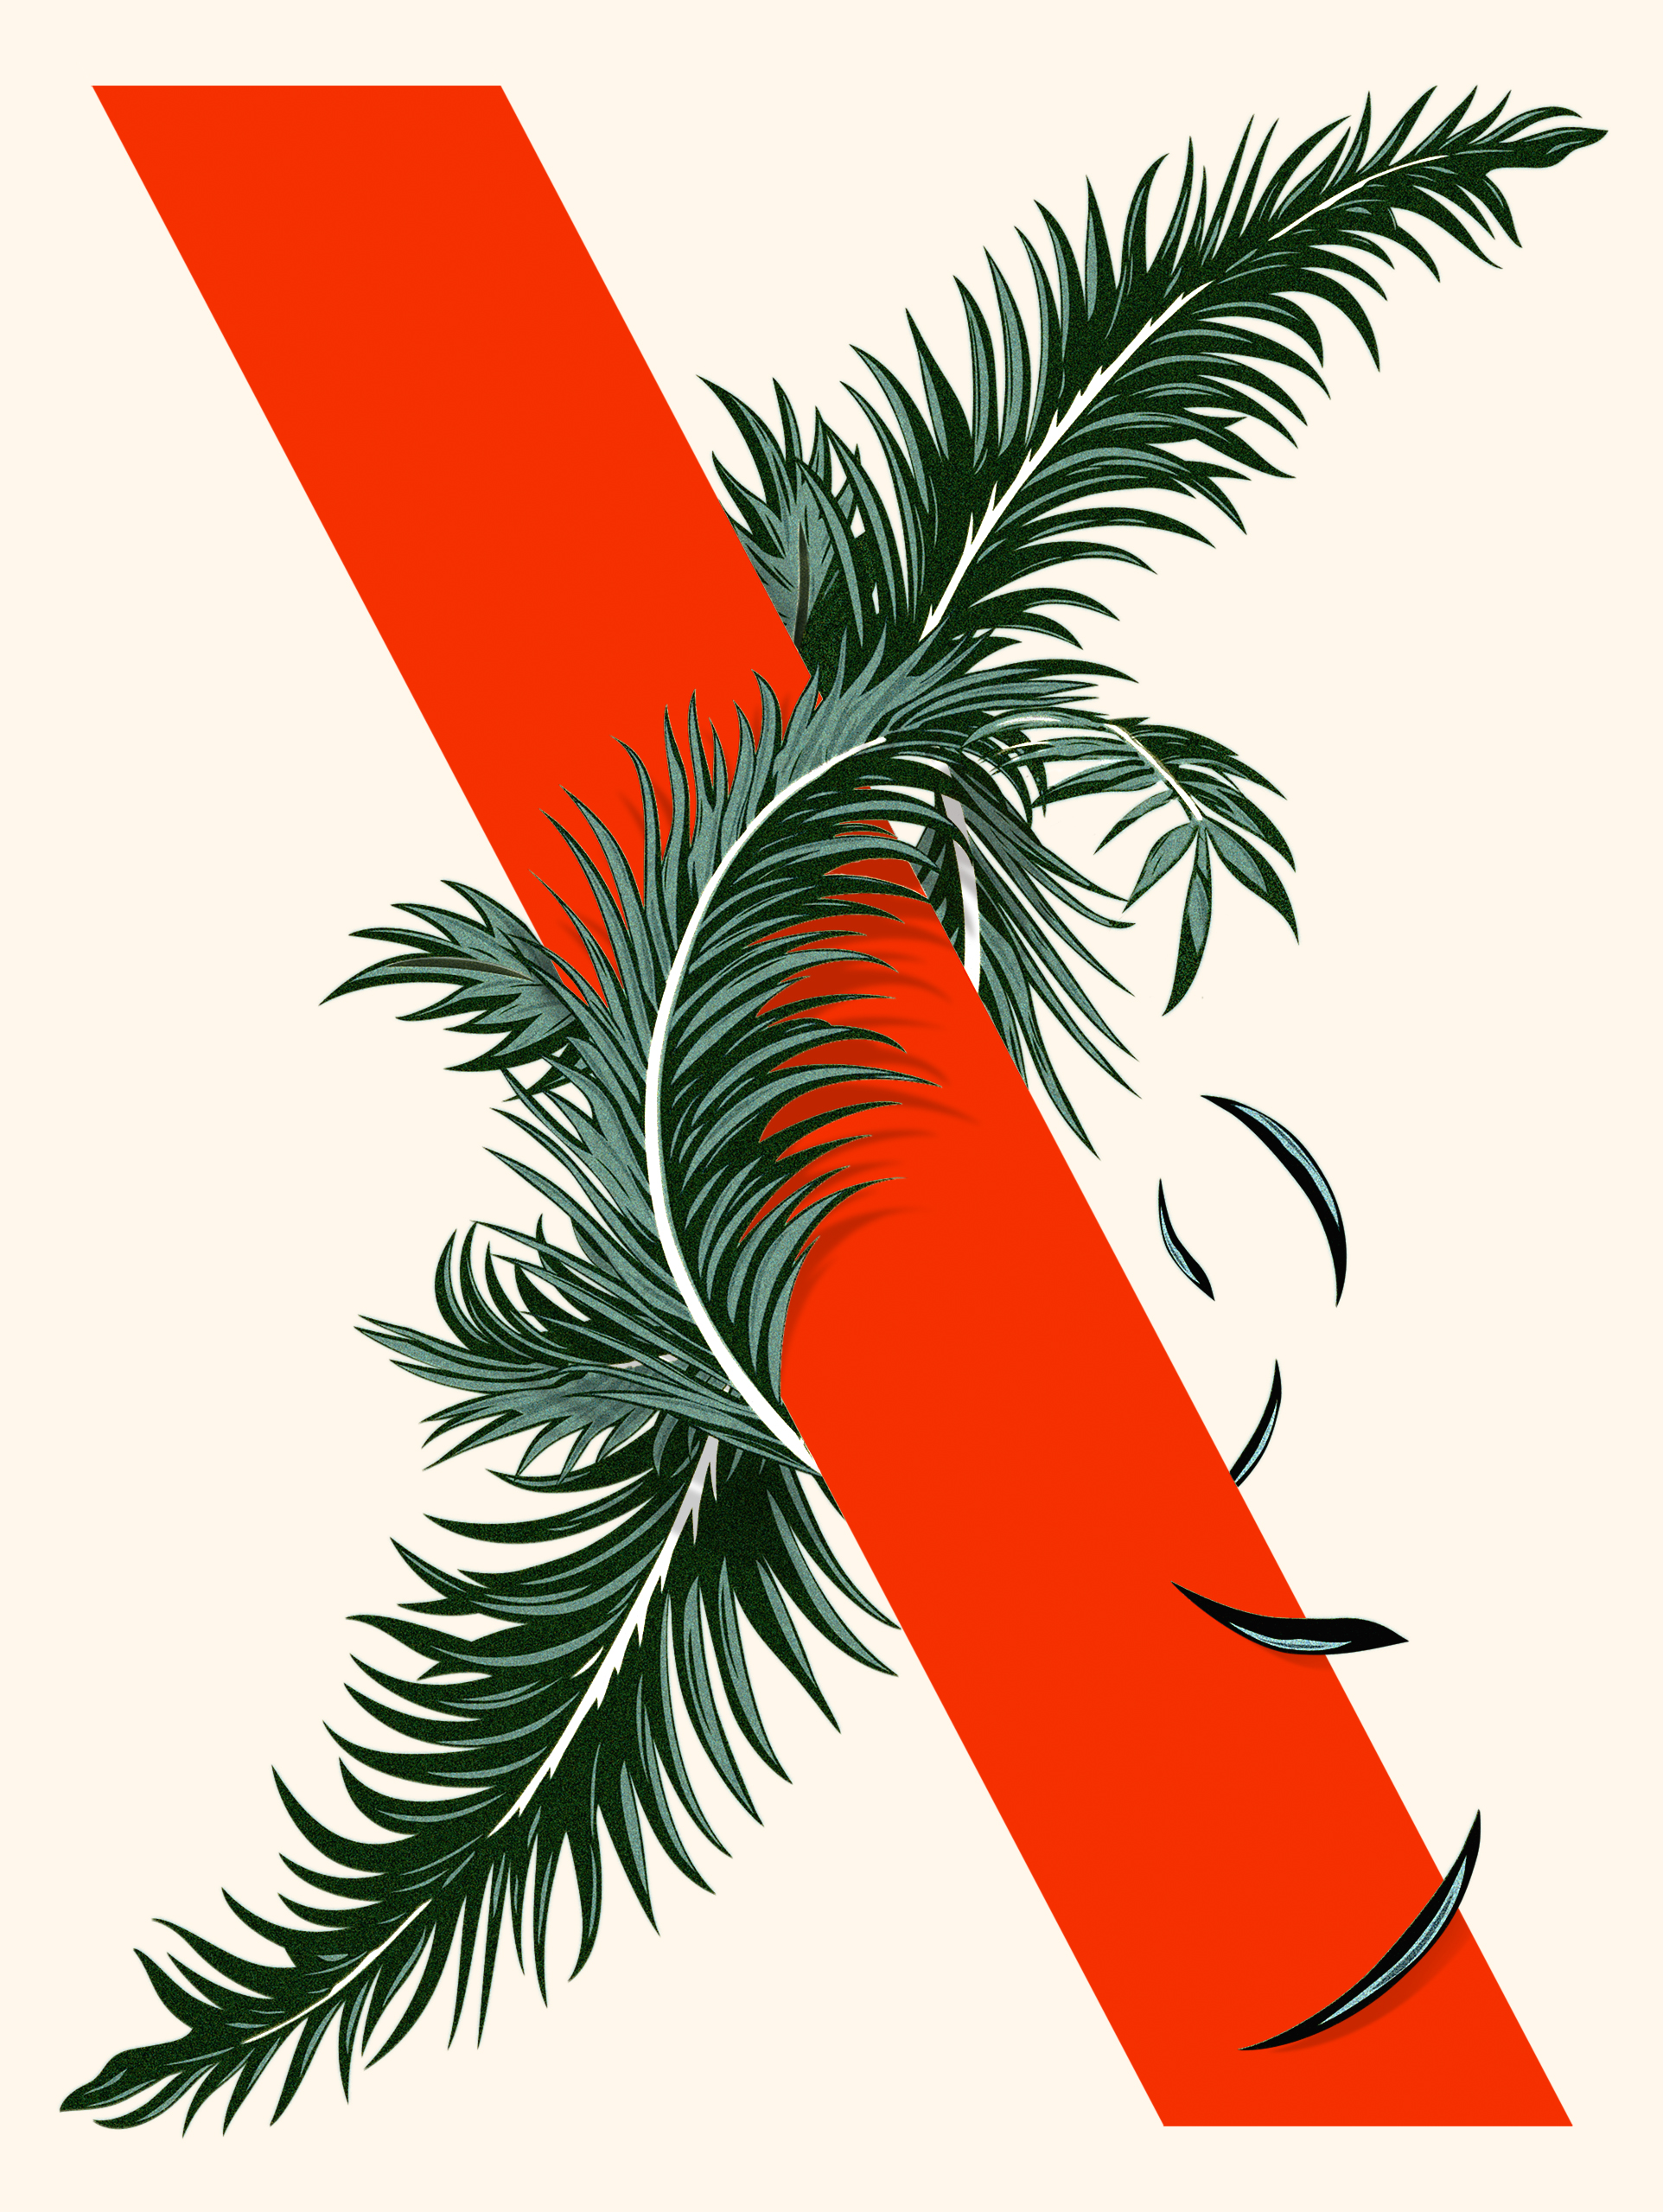 La couverture du livre Area X: The Southern Reach Trilogy de Jeff Vandermeer